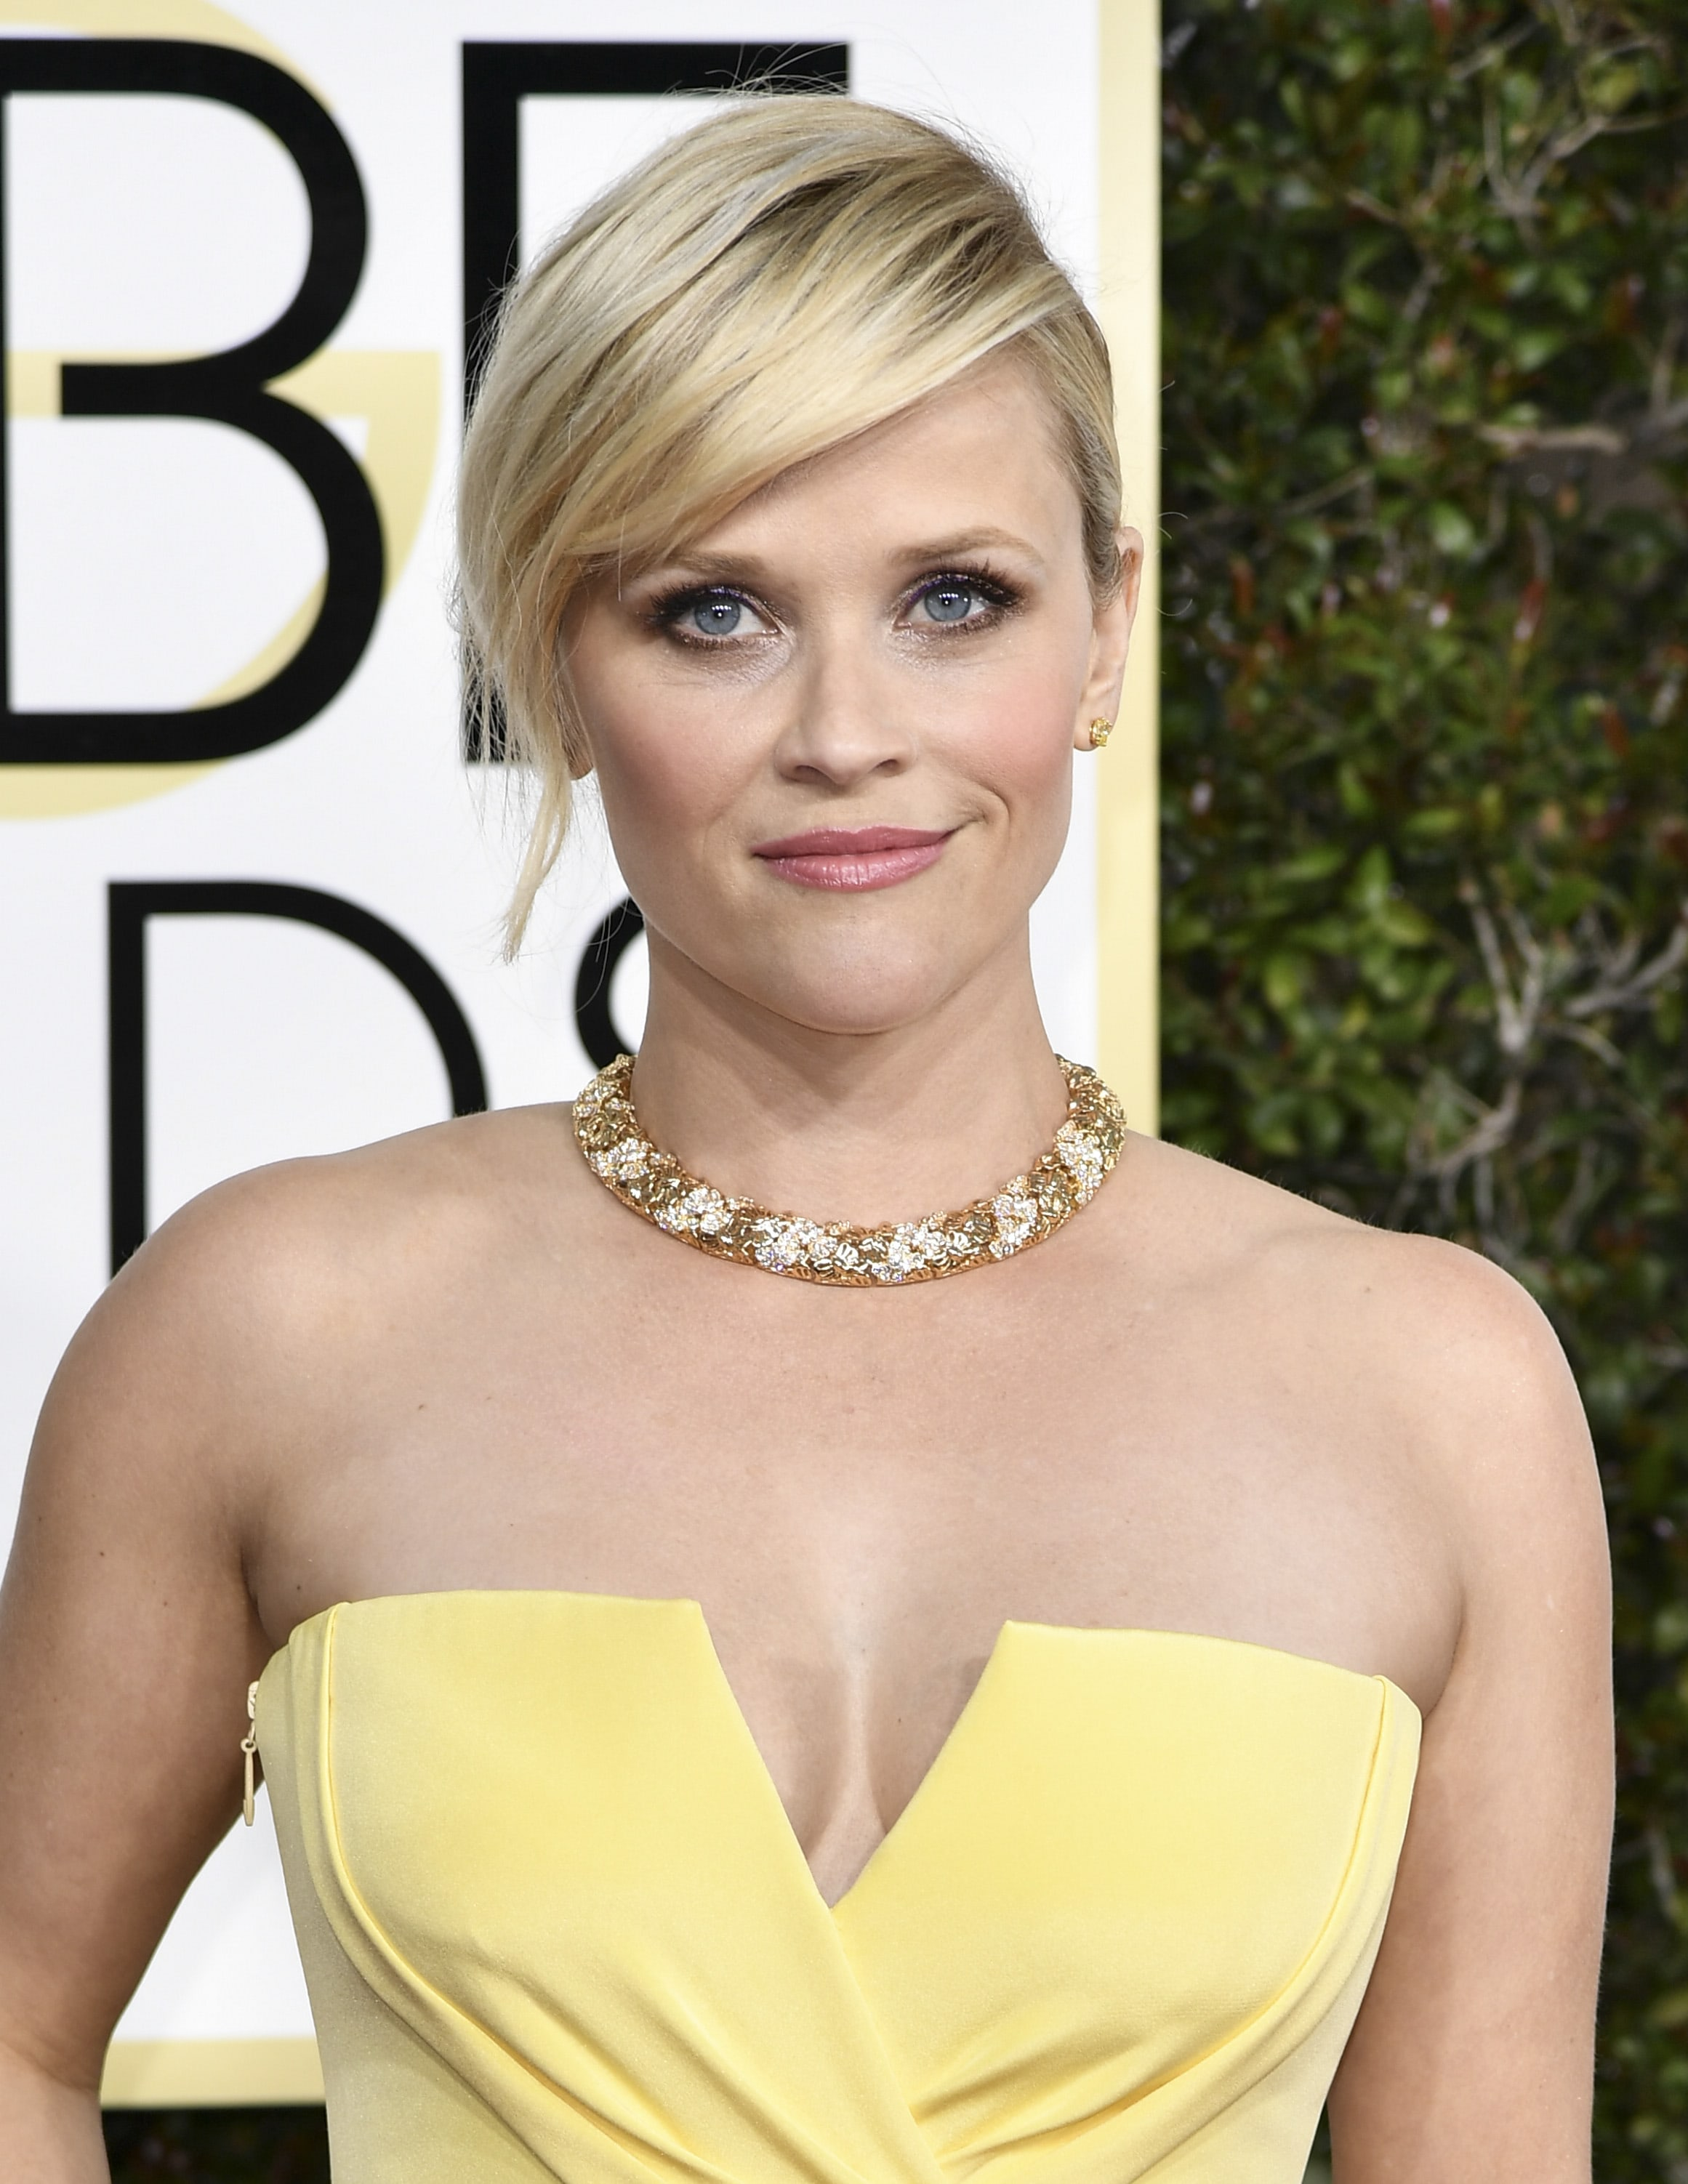 Reese Witherspoon à frange latérale portant une robe bustier jaune